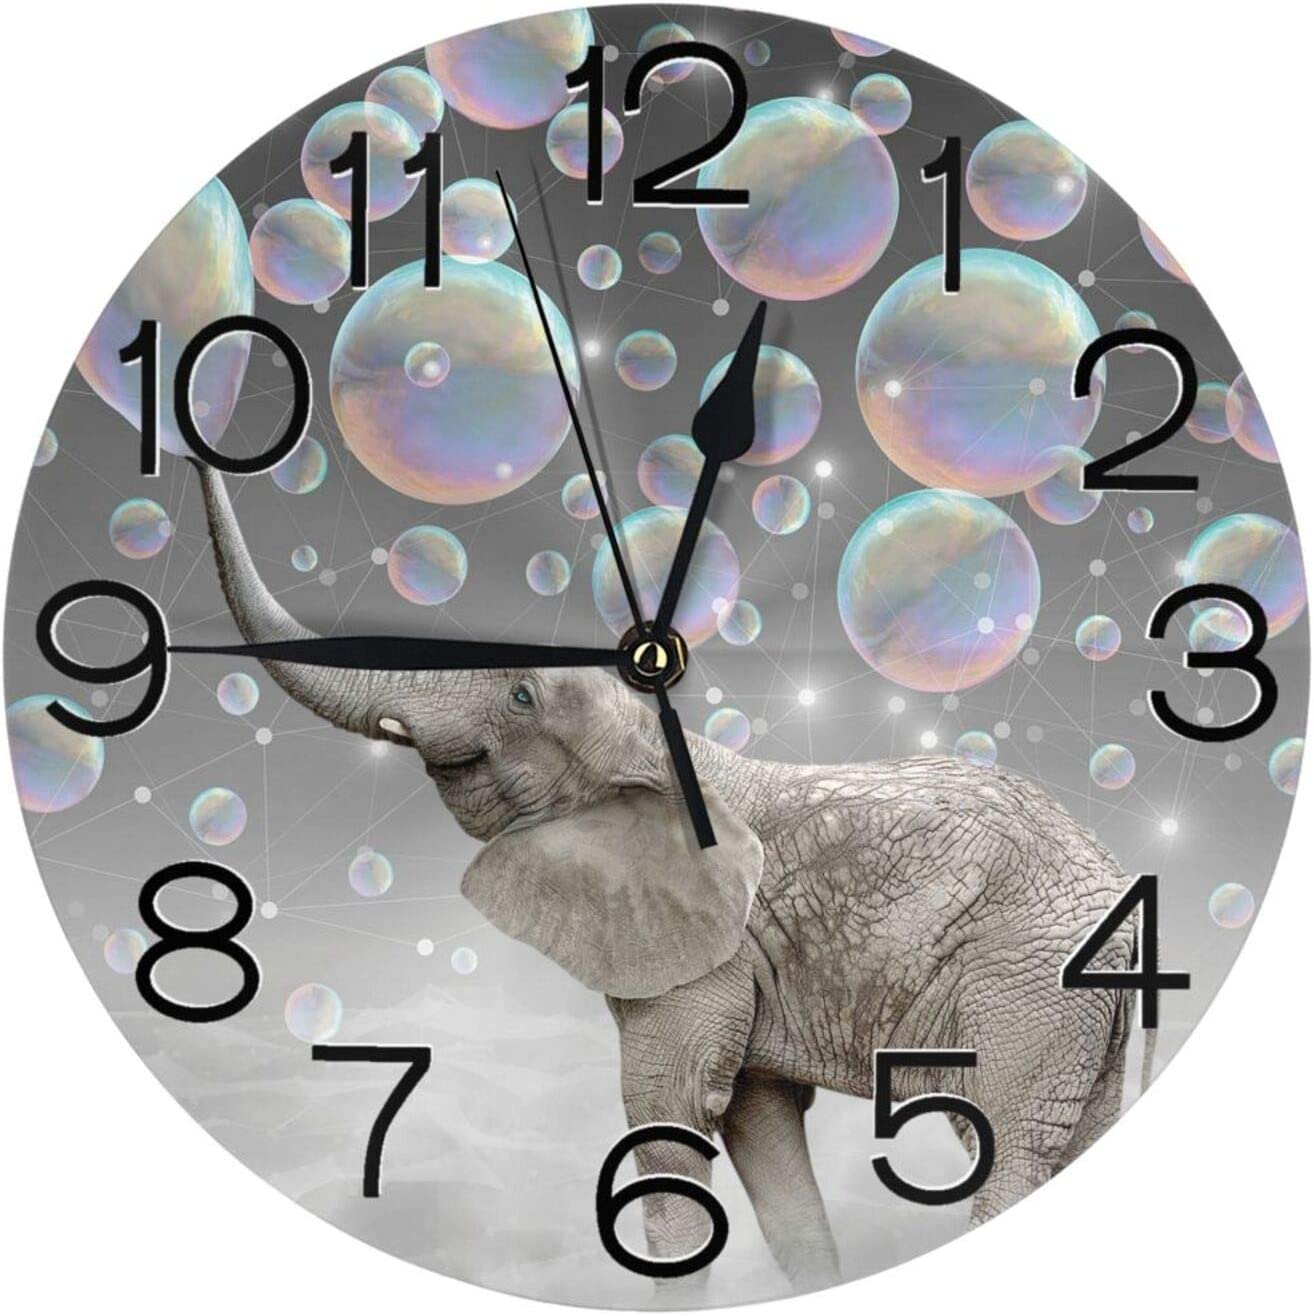 Stylish 3D Elephant with Bubble Round Wall Clock Battery Operated Quartz Analog Quiet Home Kitchen Decor Wall Clocks(9.5 Inch)